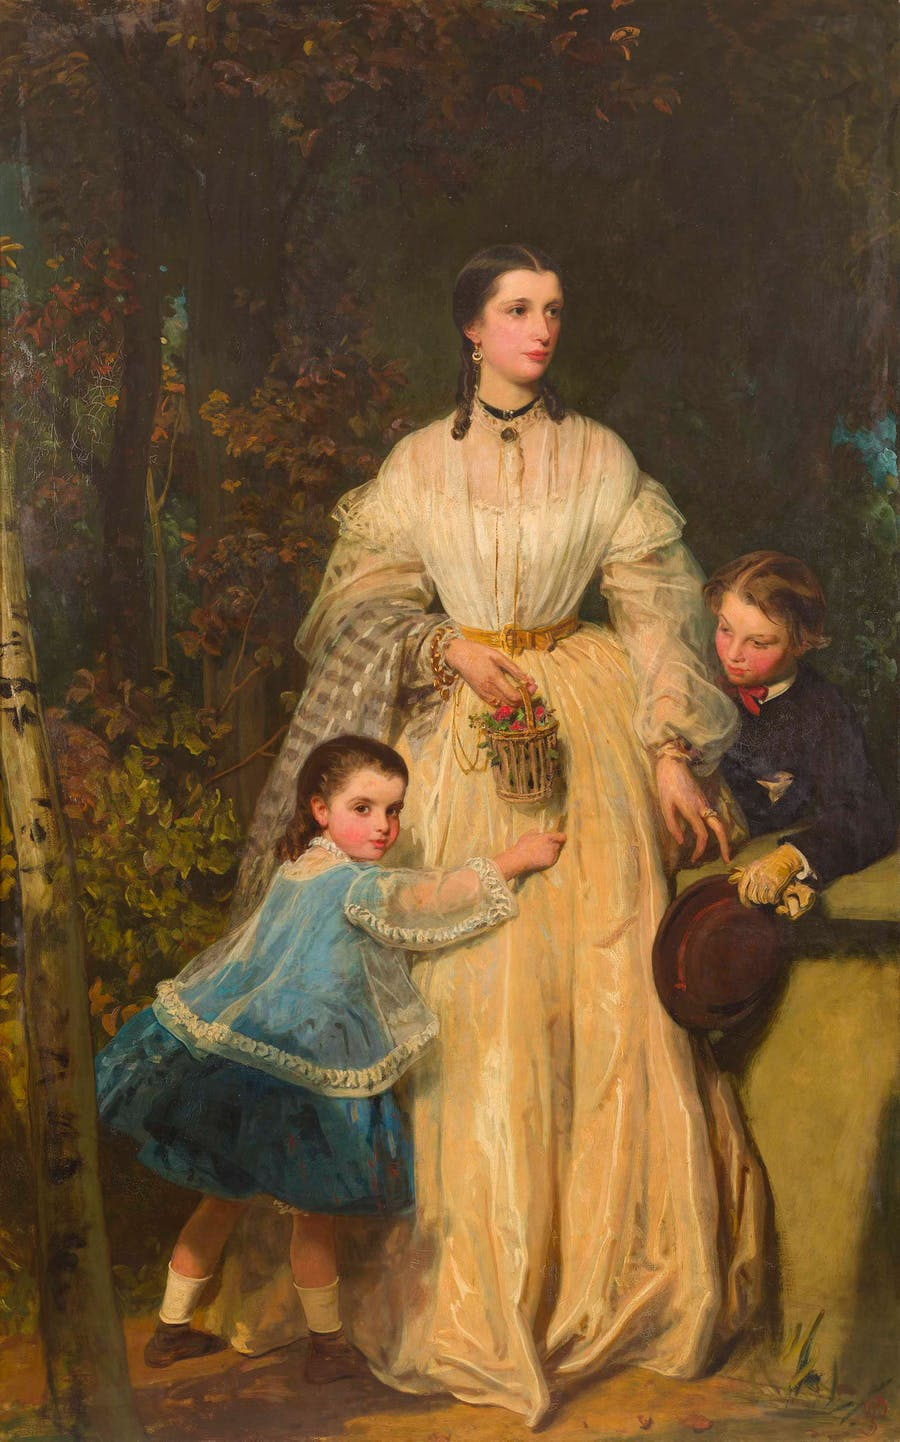 Lot 20  JAMES SANT (BRITISH 1820-1916) | FULL LENGTH PORTRAIT OF MARY FOTHERGILL AND HER CHILDREN RICHARD AND MARY  Estimation £6,000-8,000